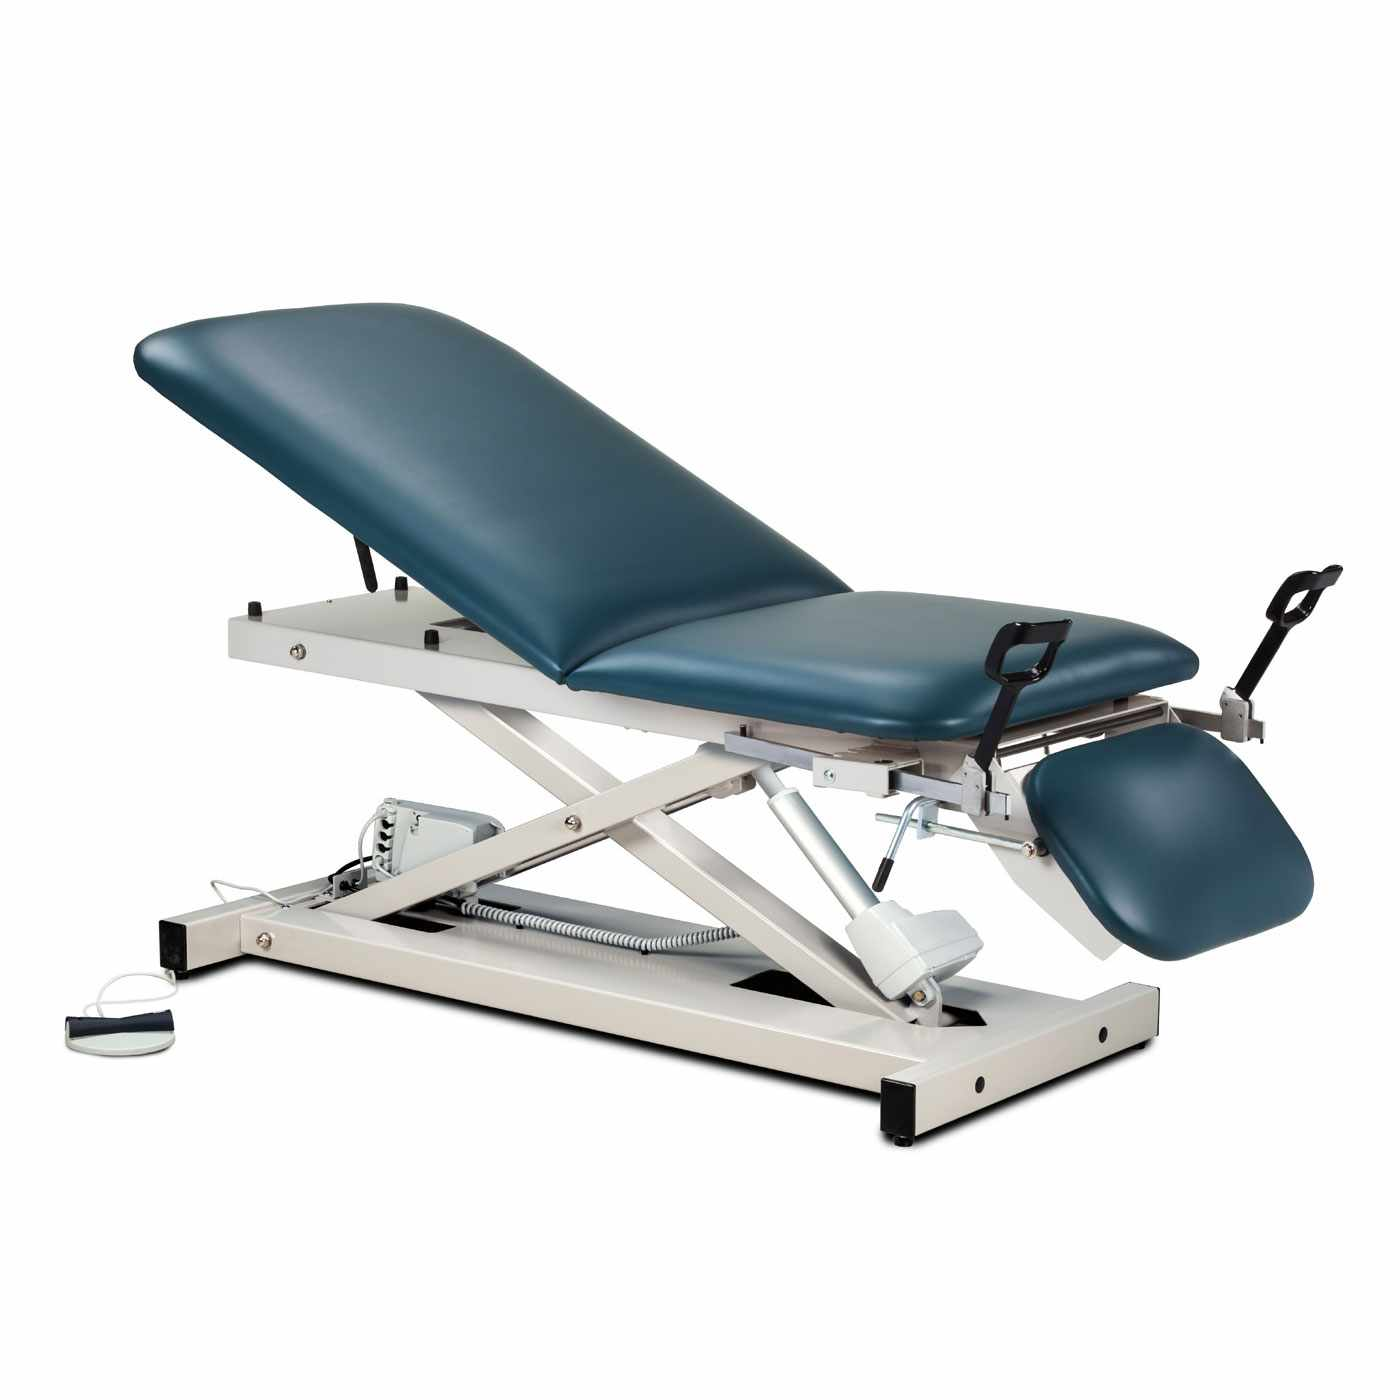 Clinton open base power table with adjustable backrest, footrest and stirrups